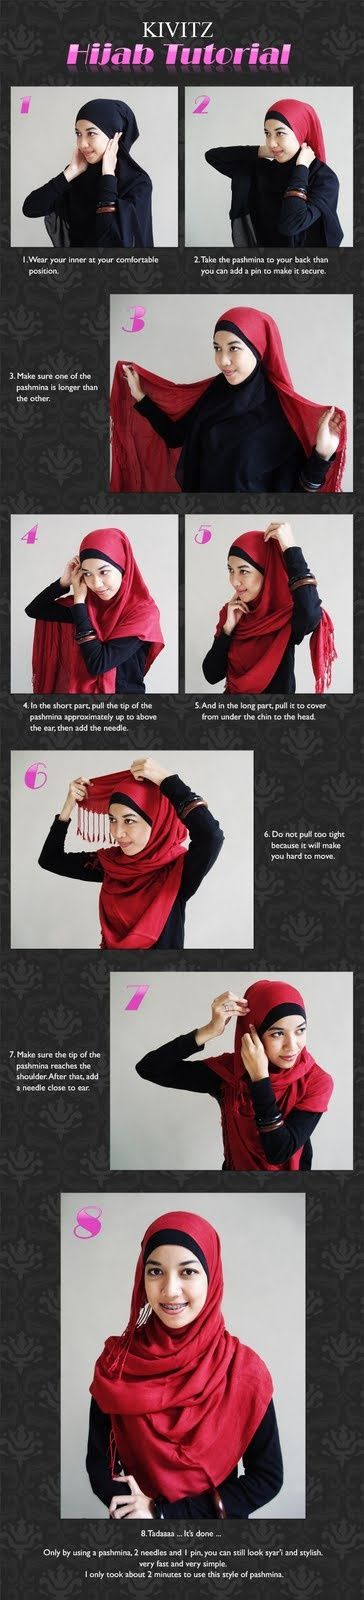 Kivitz hijab tutorial